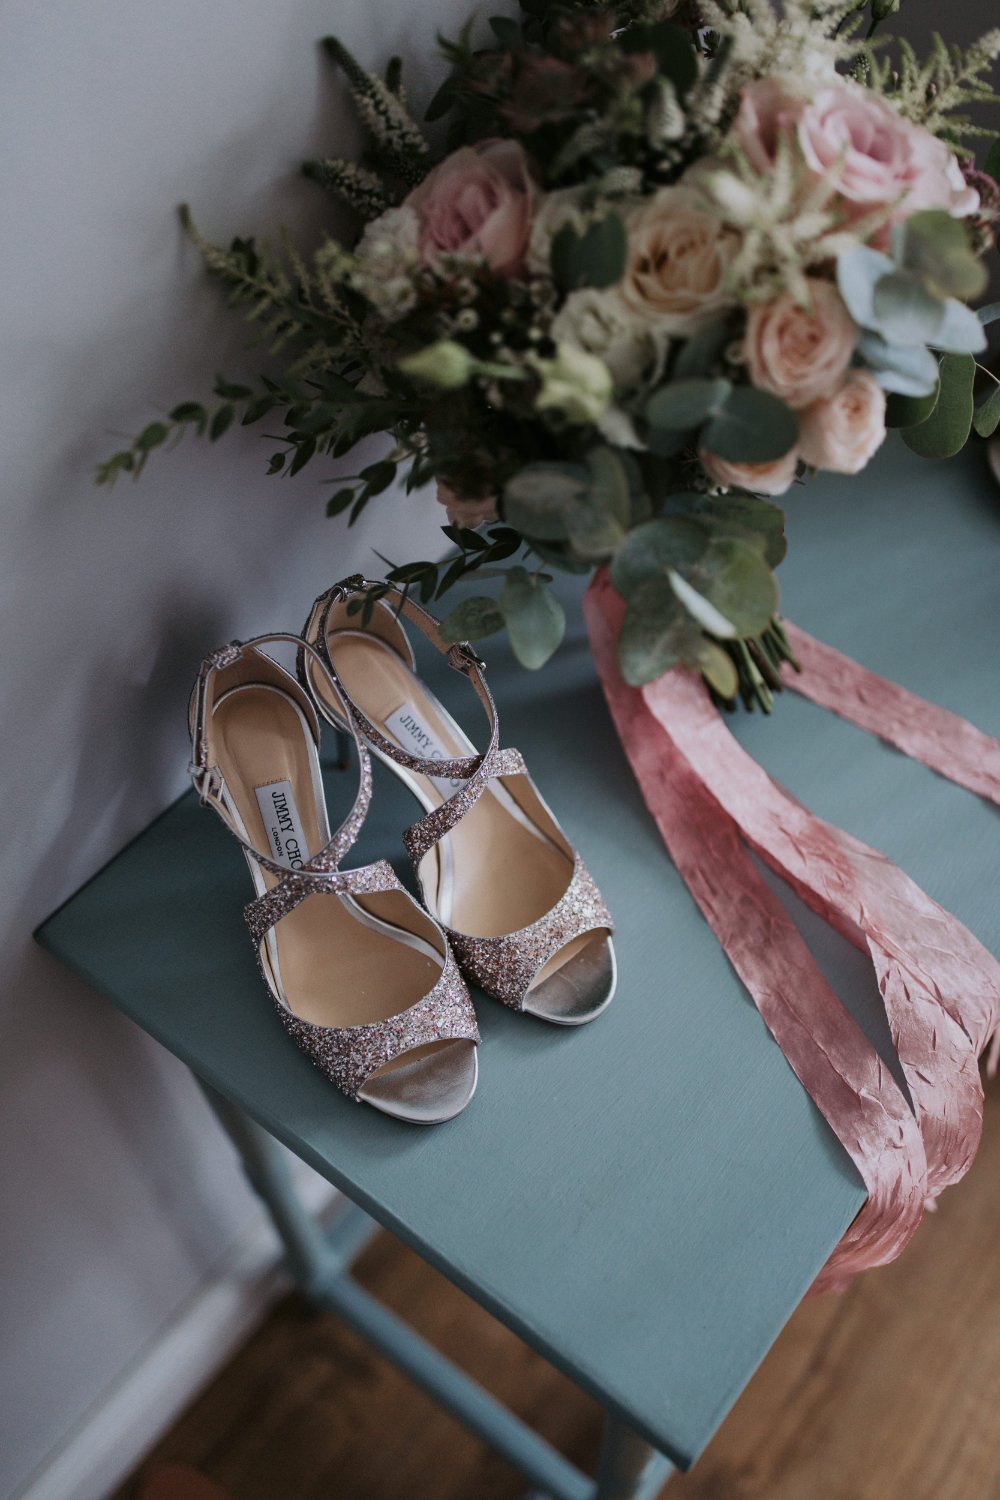 Bride Bridal Shoes Field Kitchen Wedding Siobhan Amy Photography